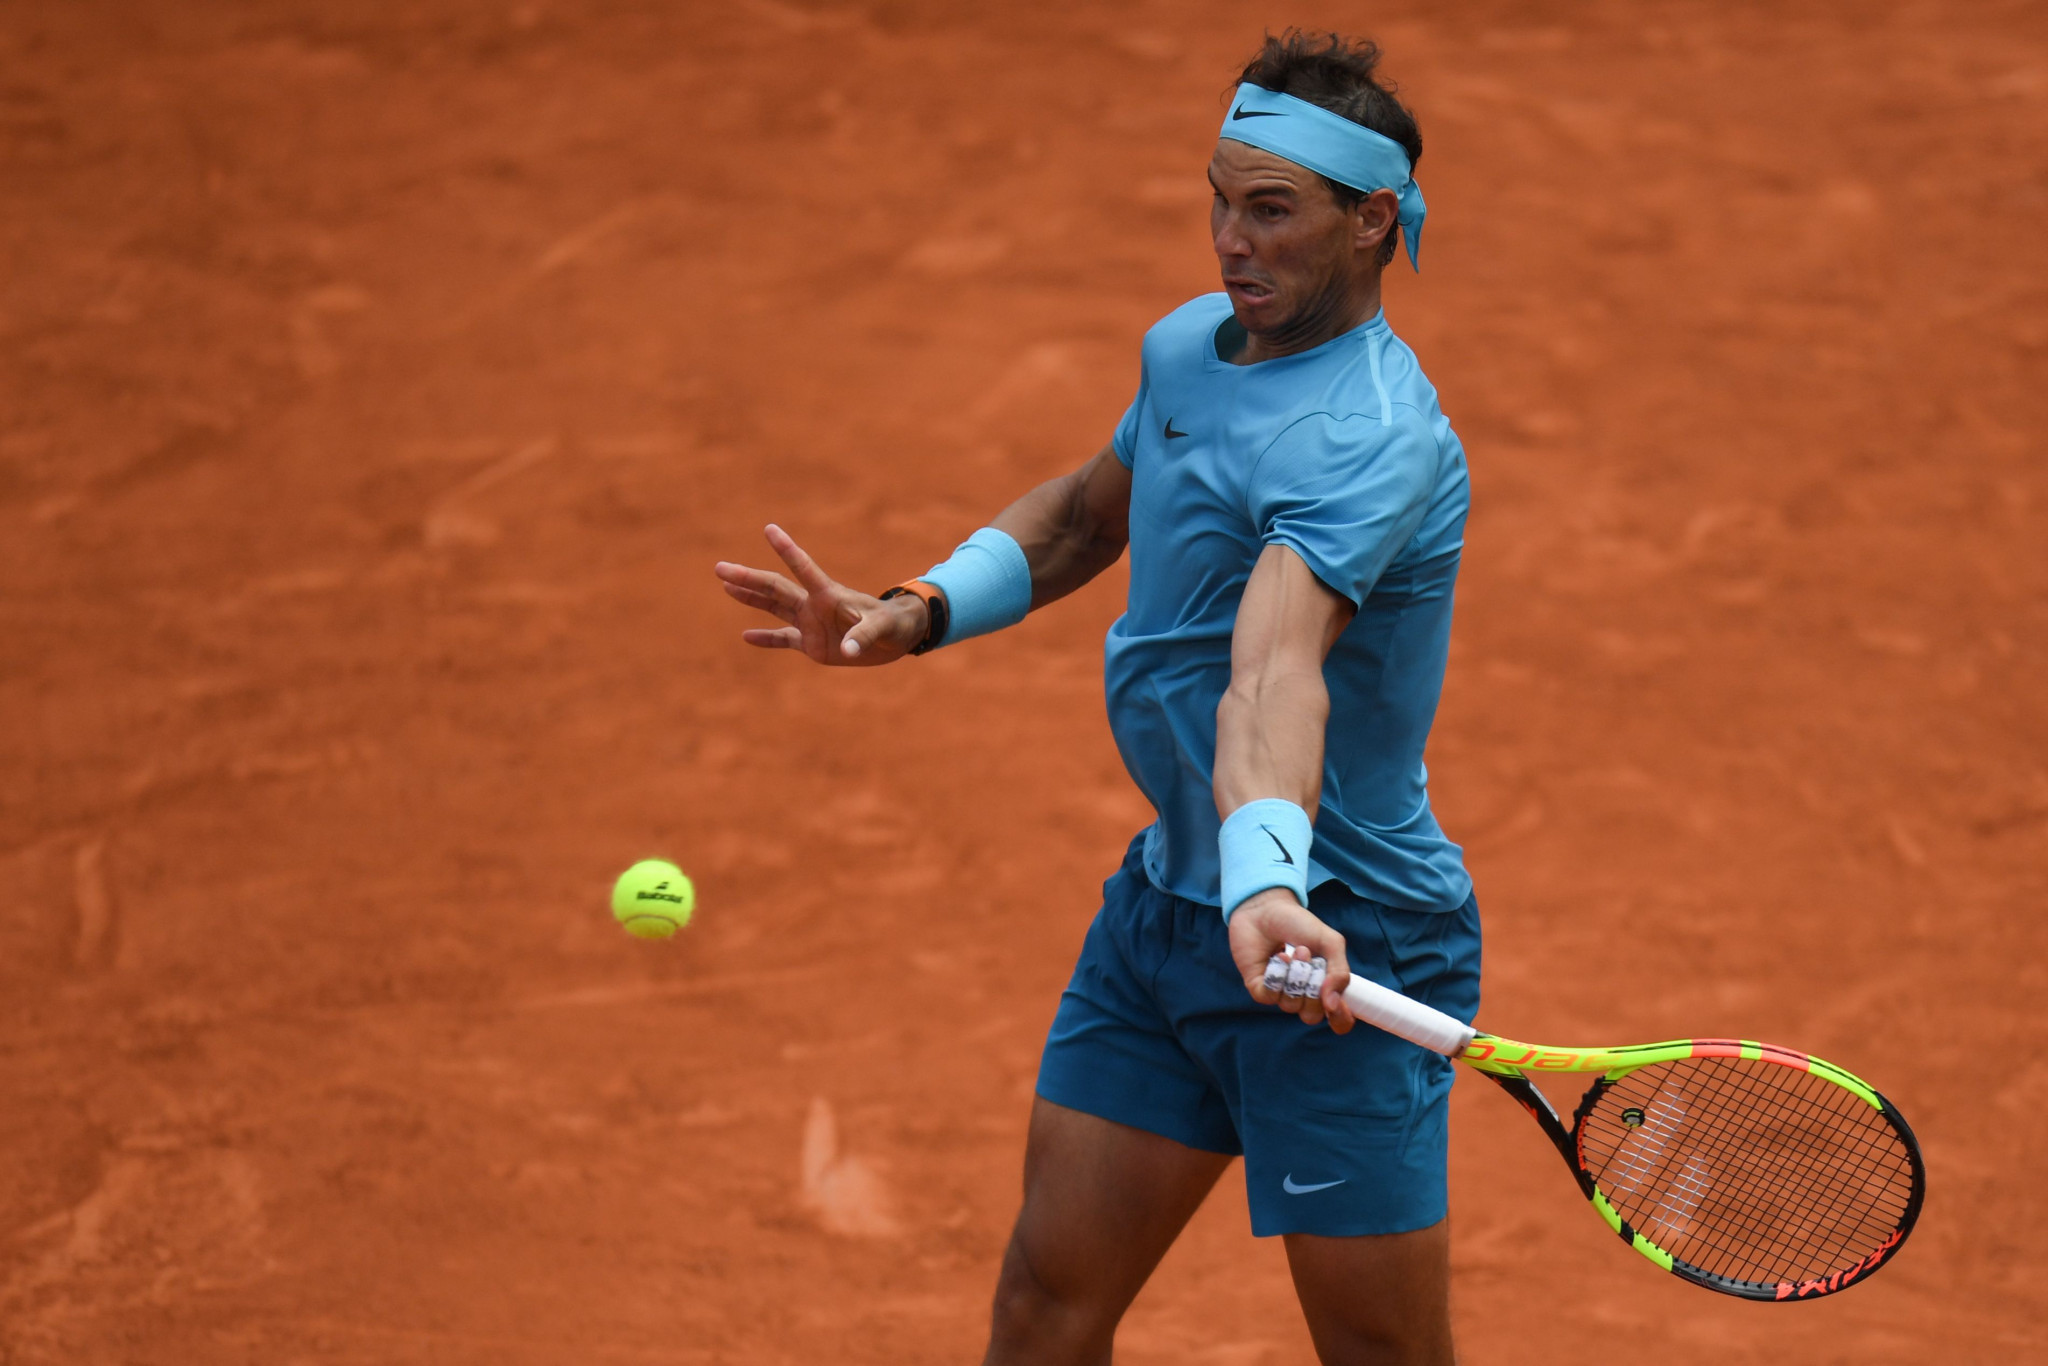 Nadal reaches quarter-finals as Williams withdraws through injury at French Open